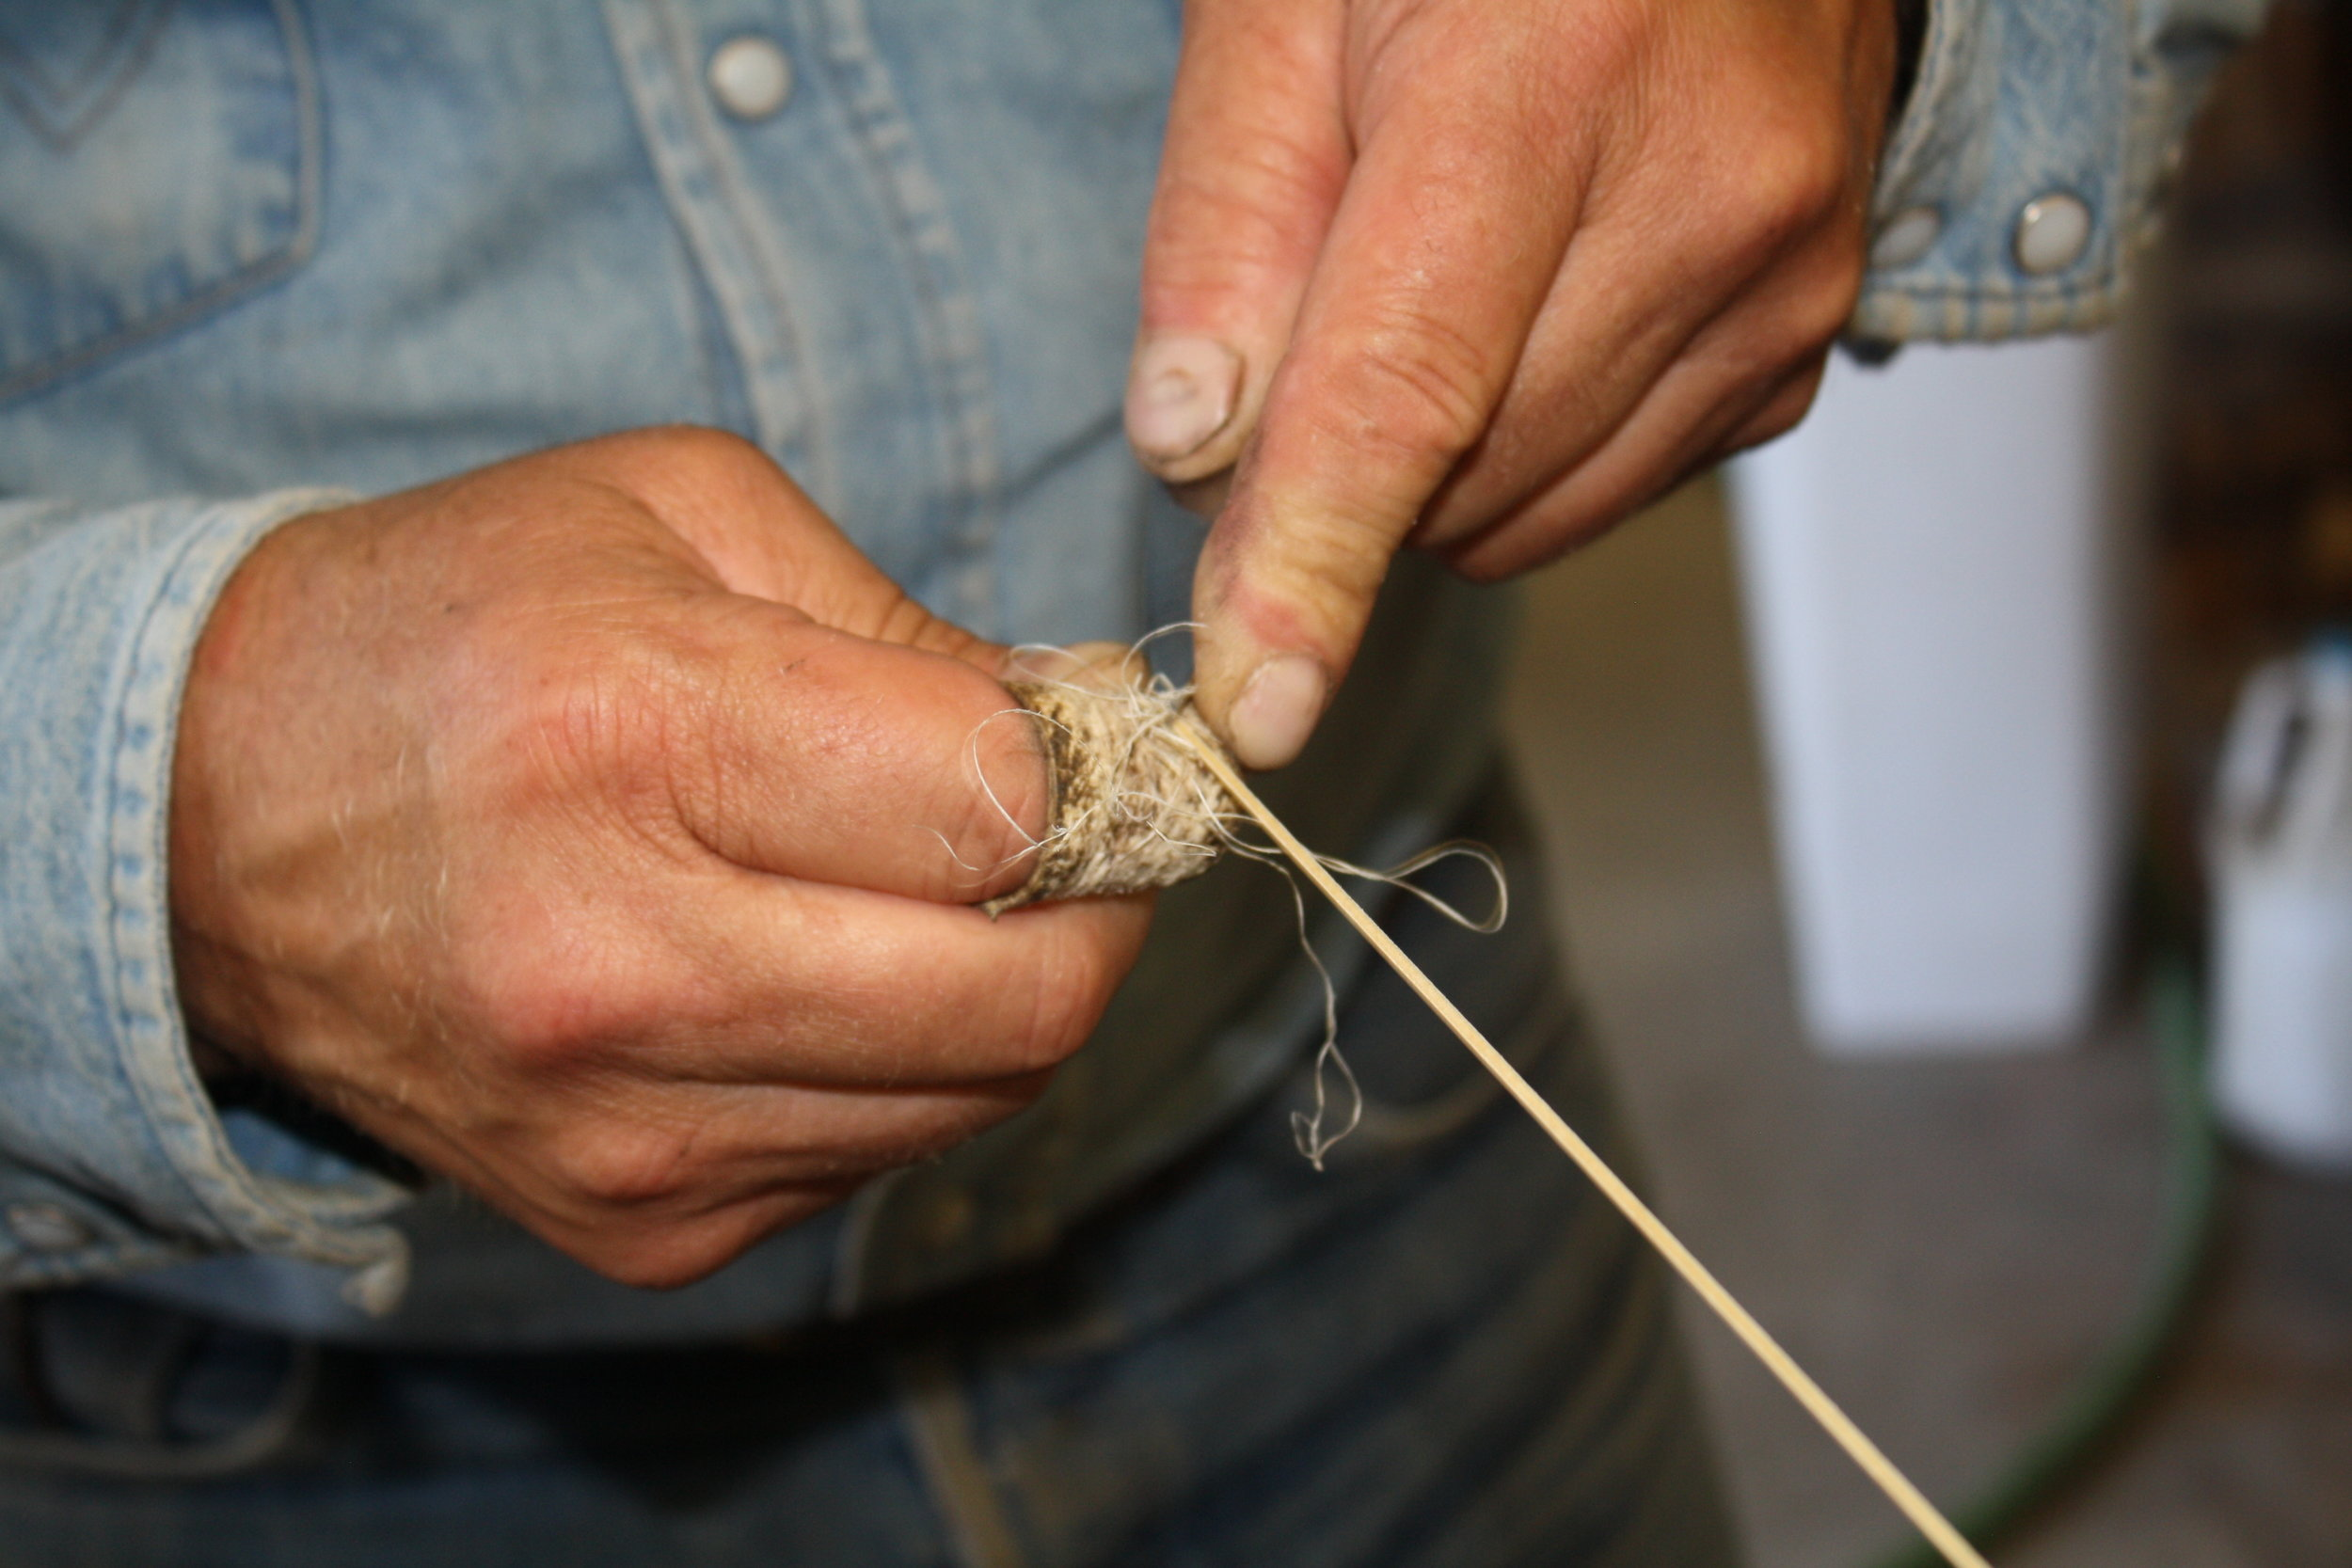 Minor bevels a piece of rawhide string, removing any rough edges to ensure evenness throughout.